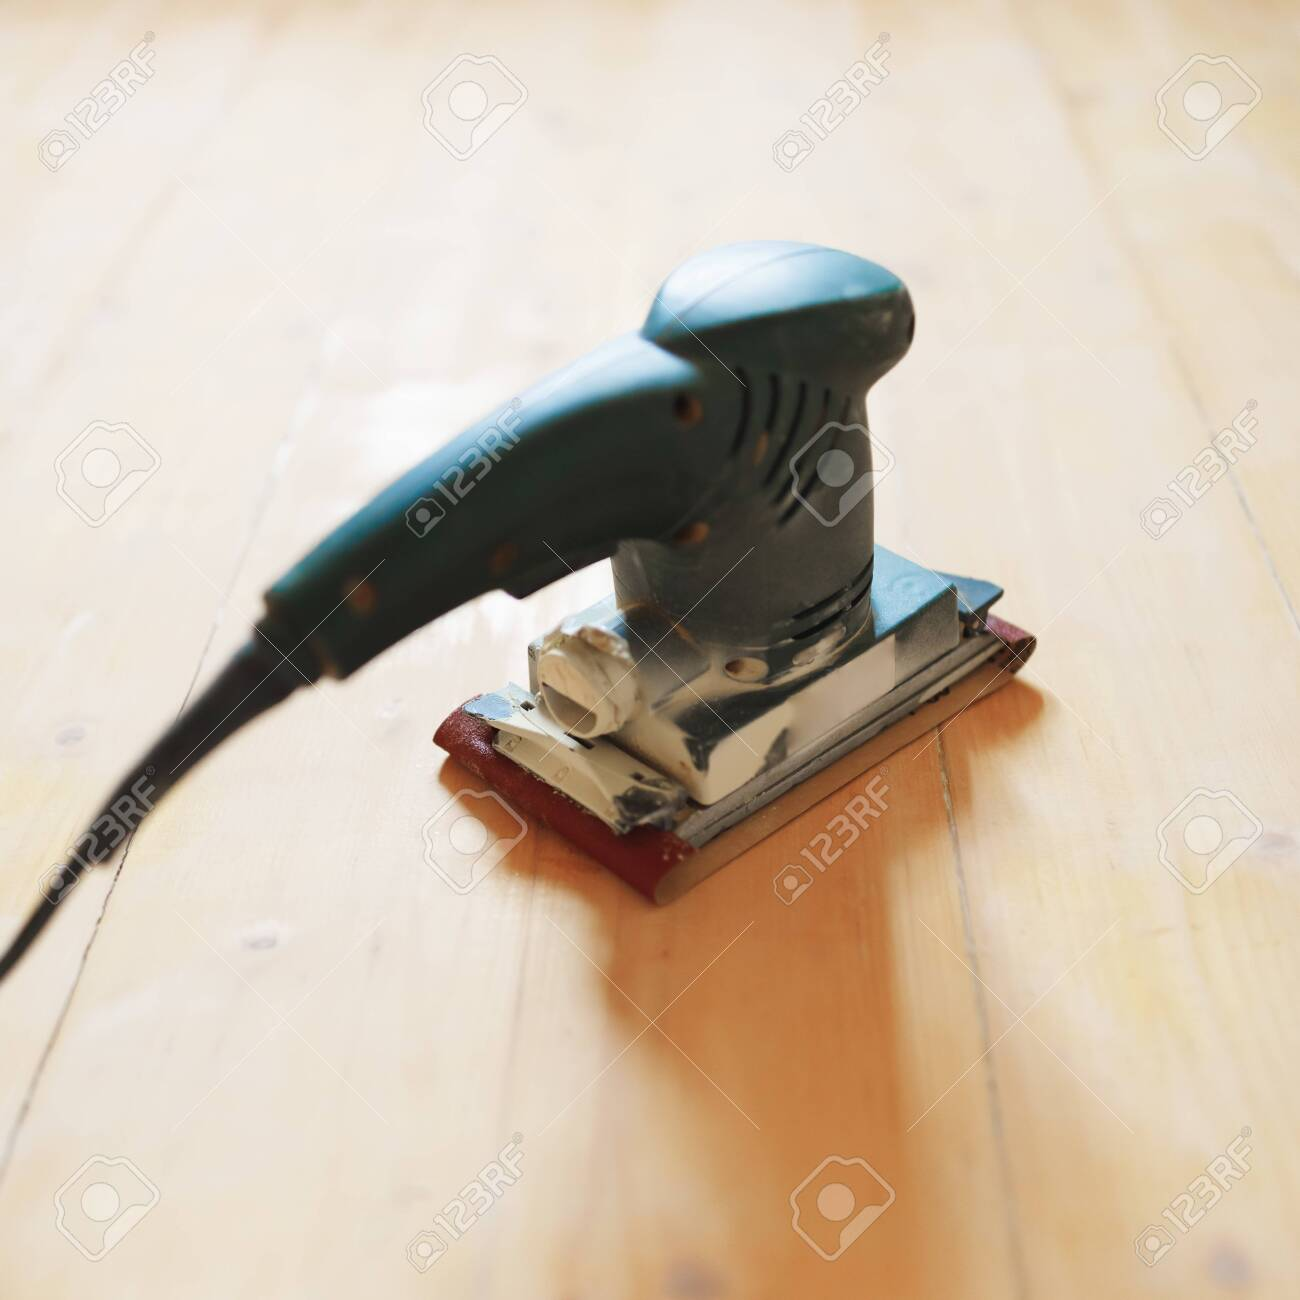 Wooden Floor Sanding With Flat Sander Tool Stock Photo Picture